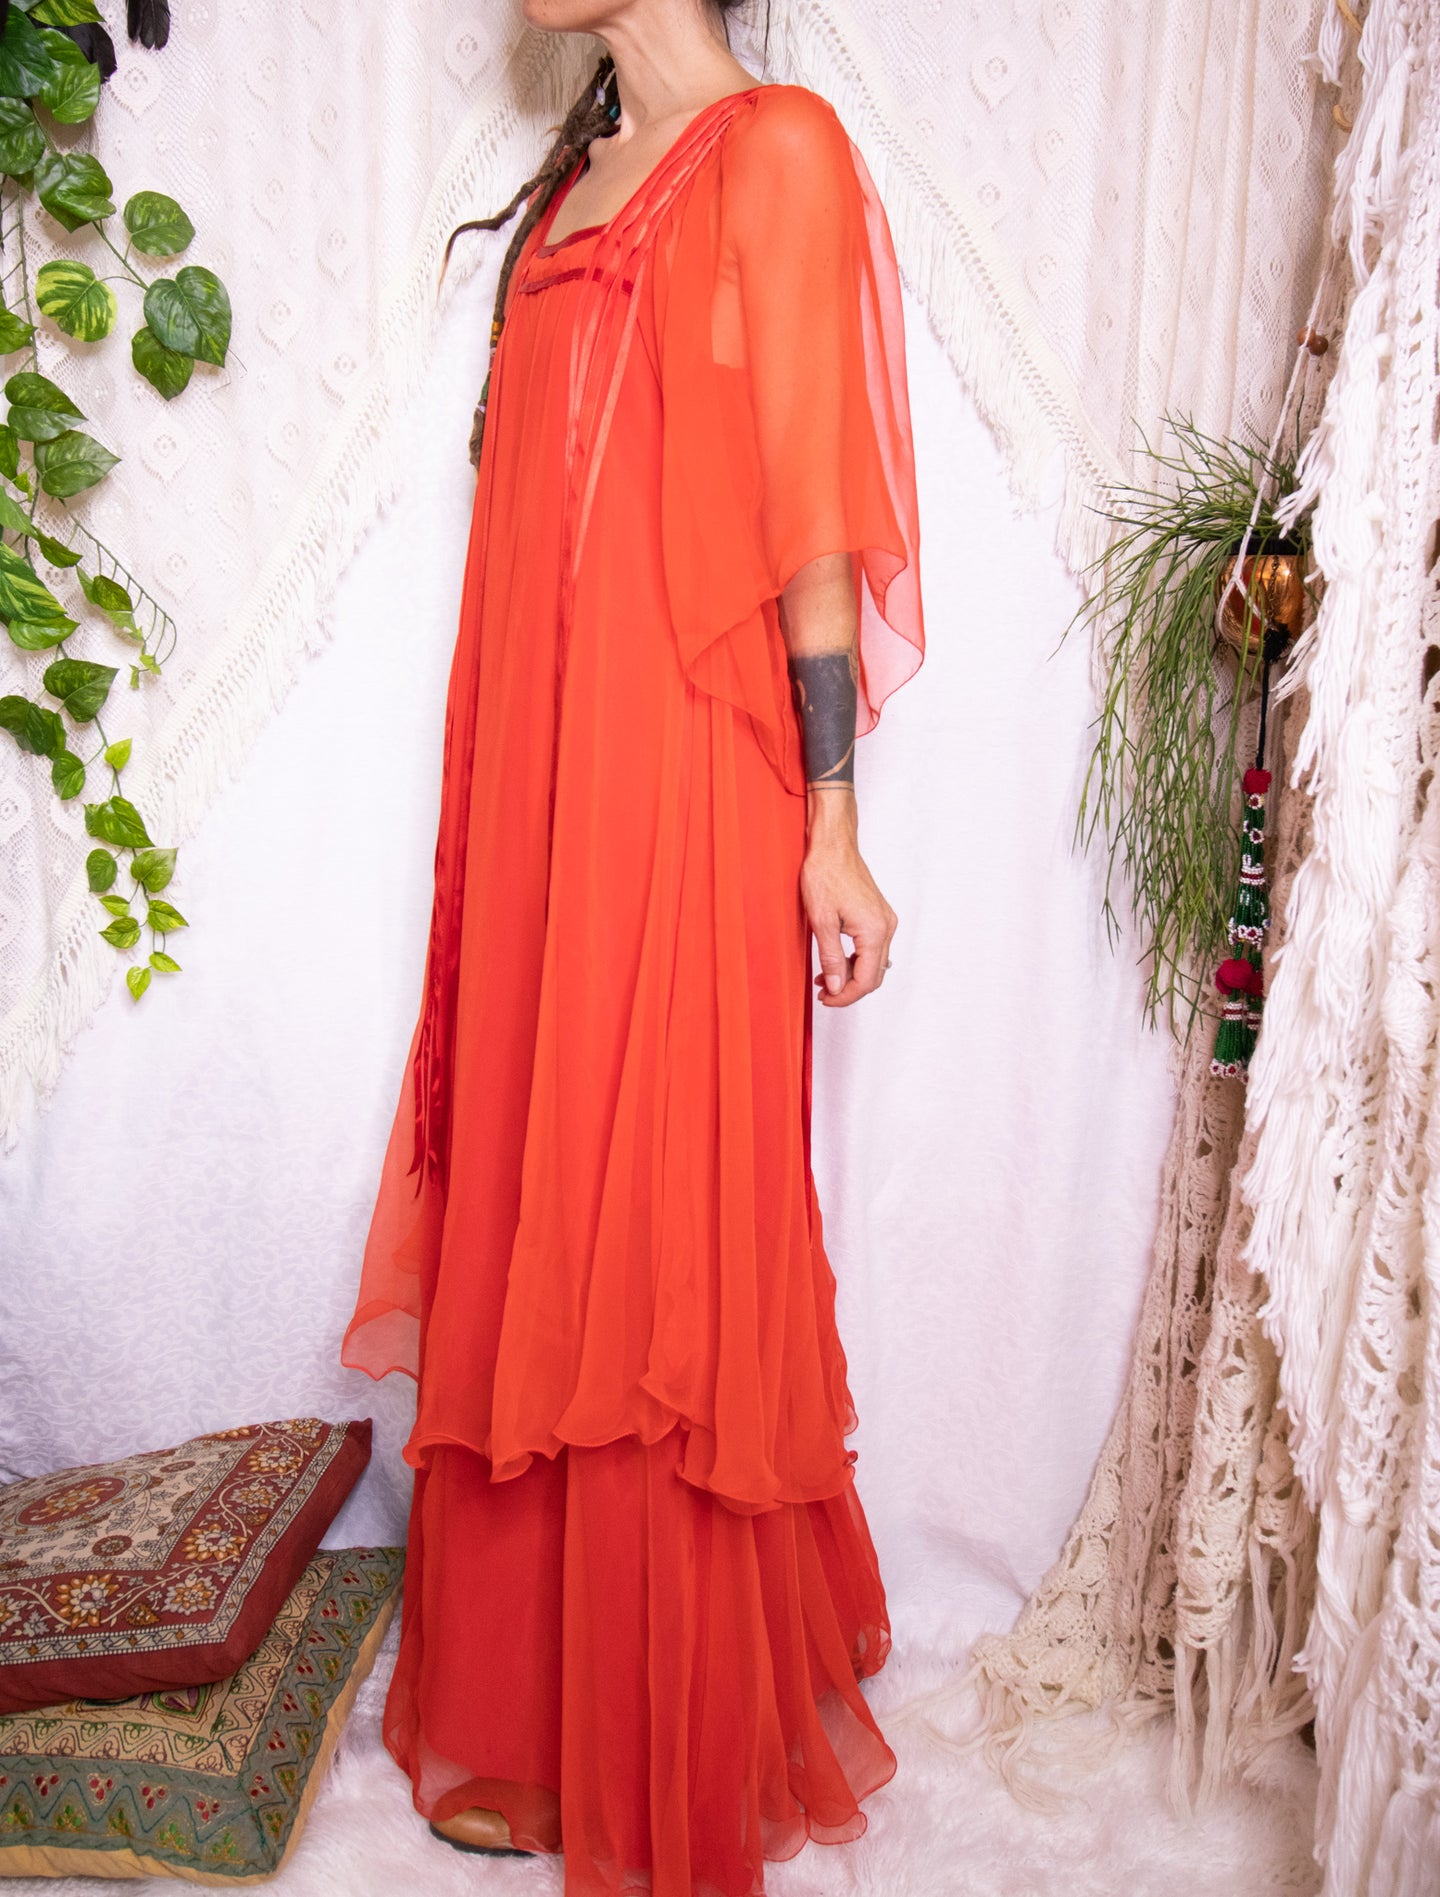 Dreamy 70s chiffon maxi dress S-M